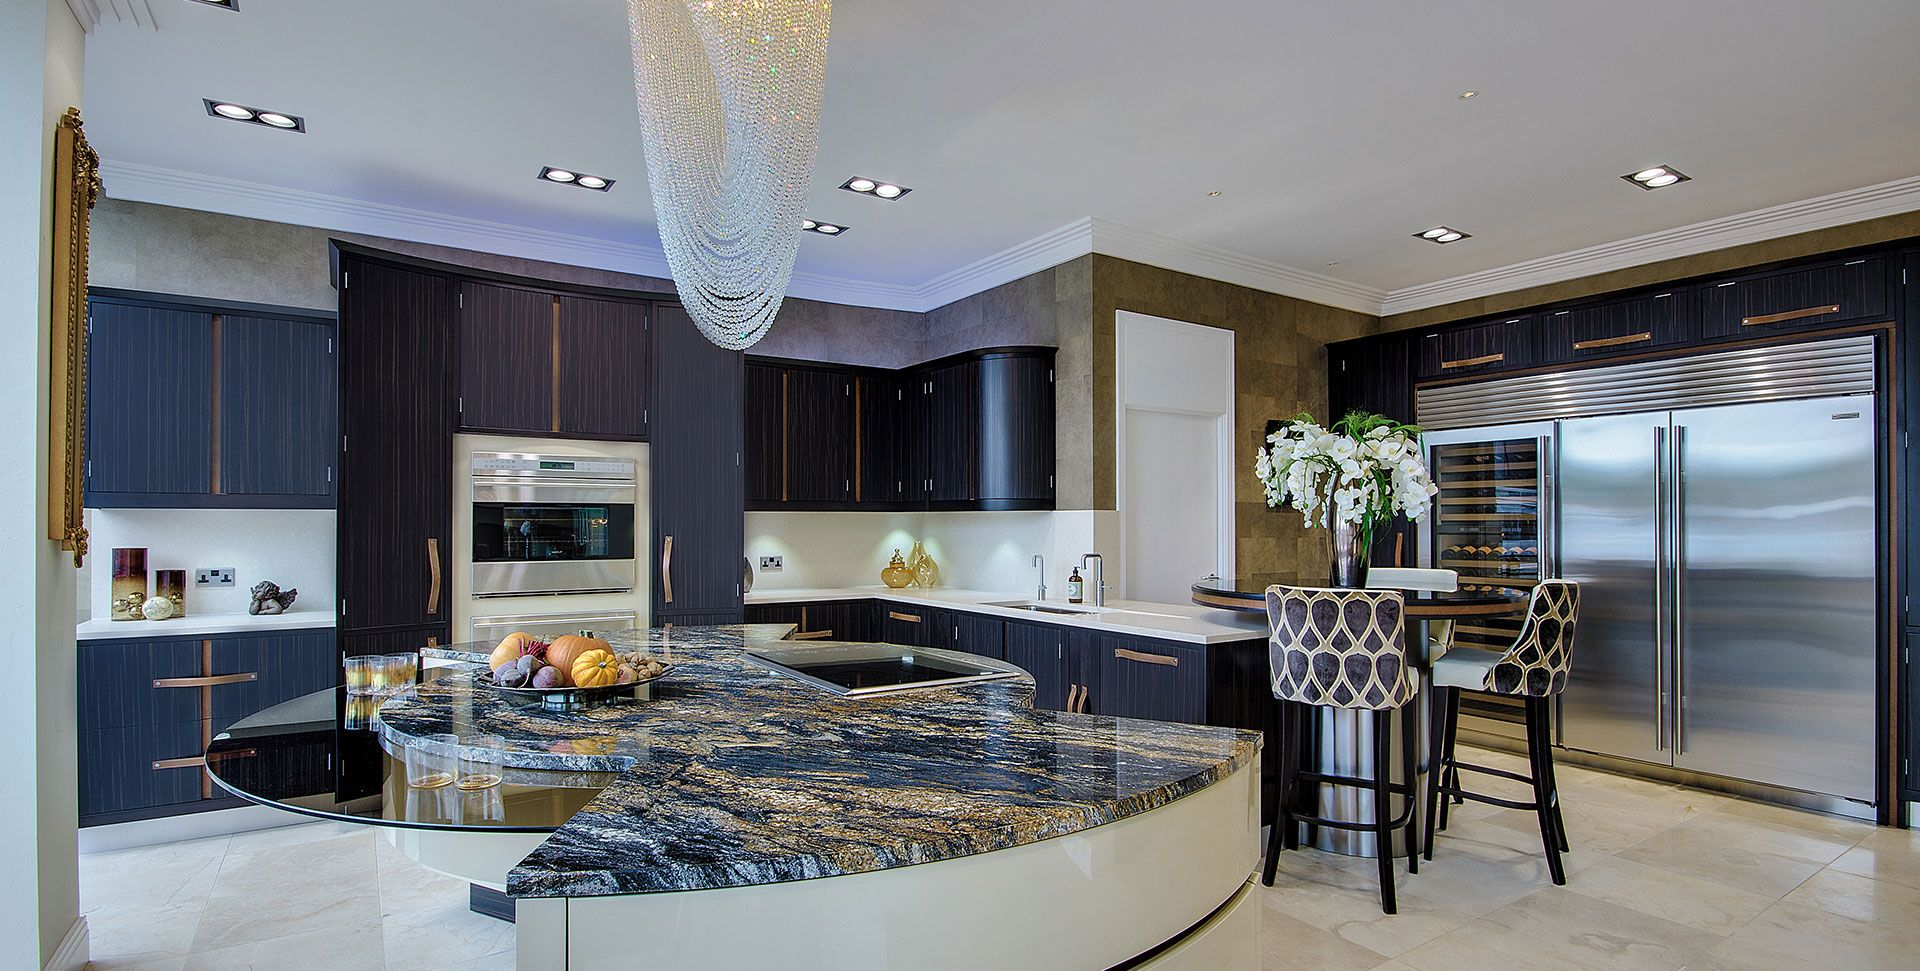 Rococco Kitchen By Extreme Design (Sunningdale Showroom